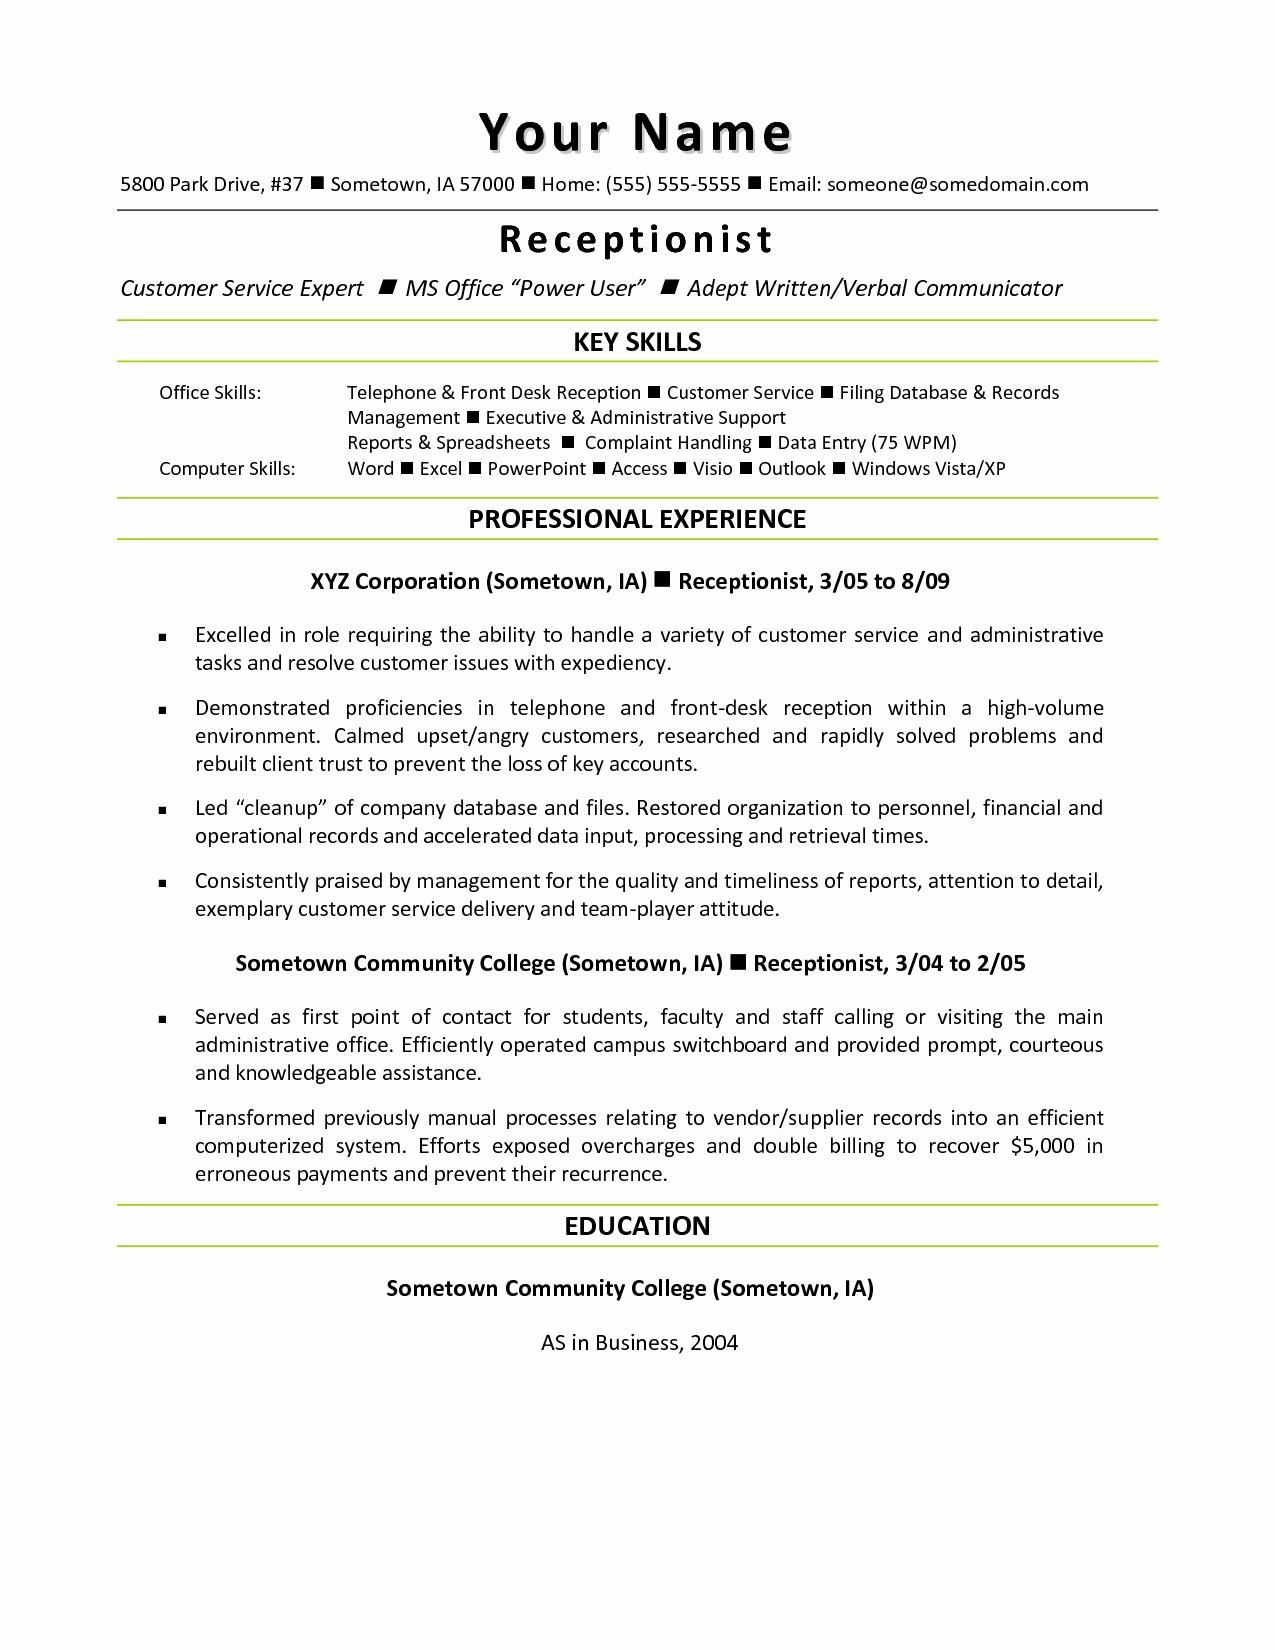 Medical assistant Cover Letter Template - Sample Cover Letter for An Administrative assistant Position